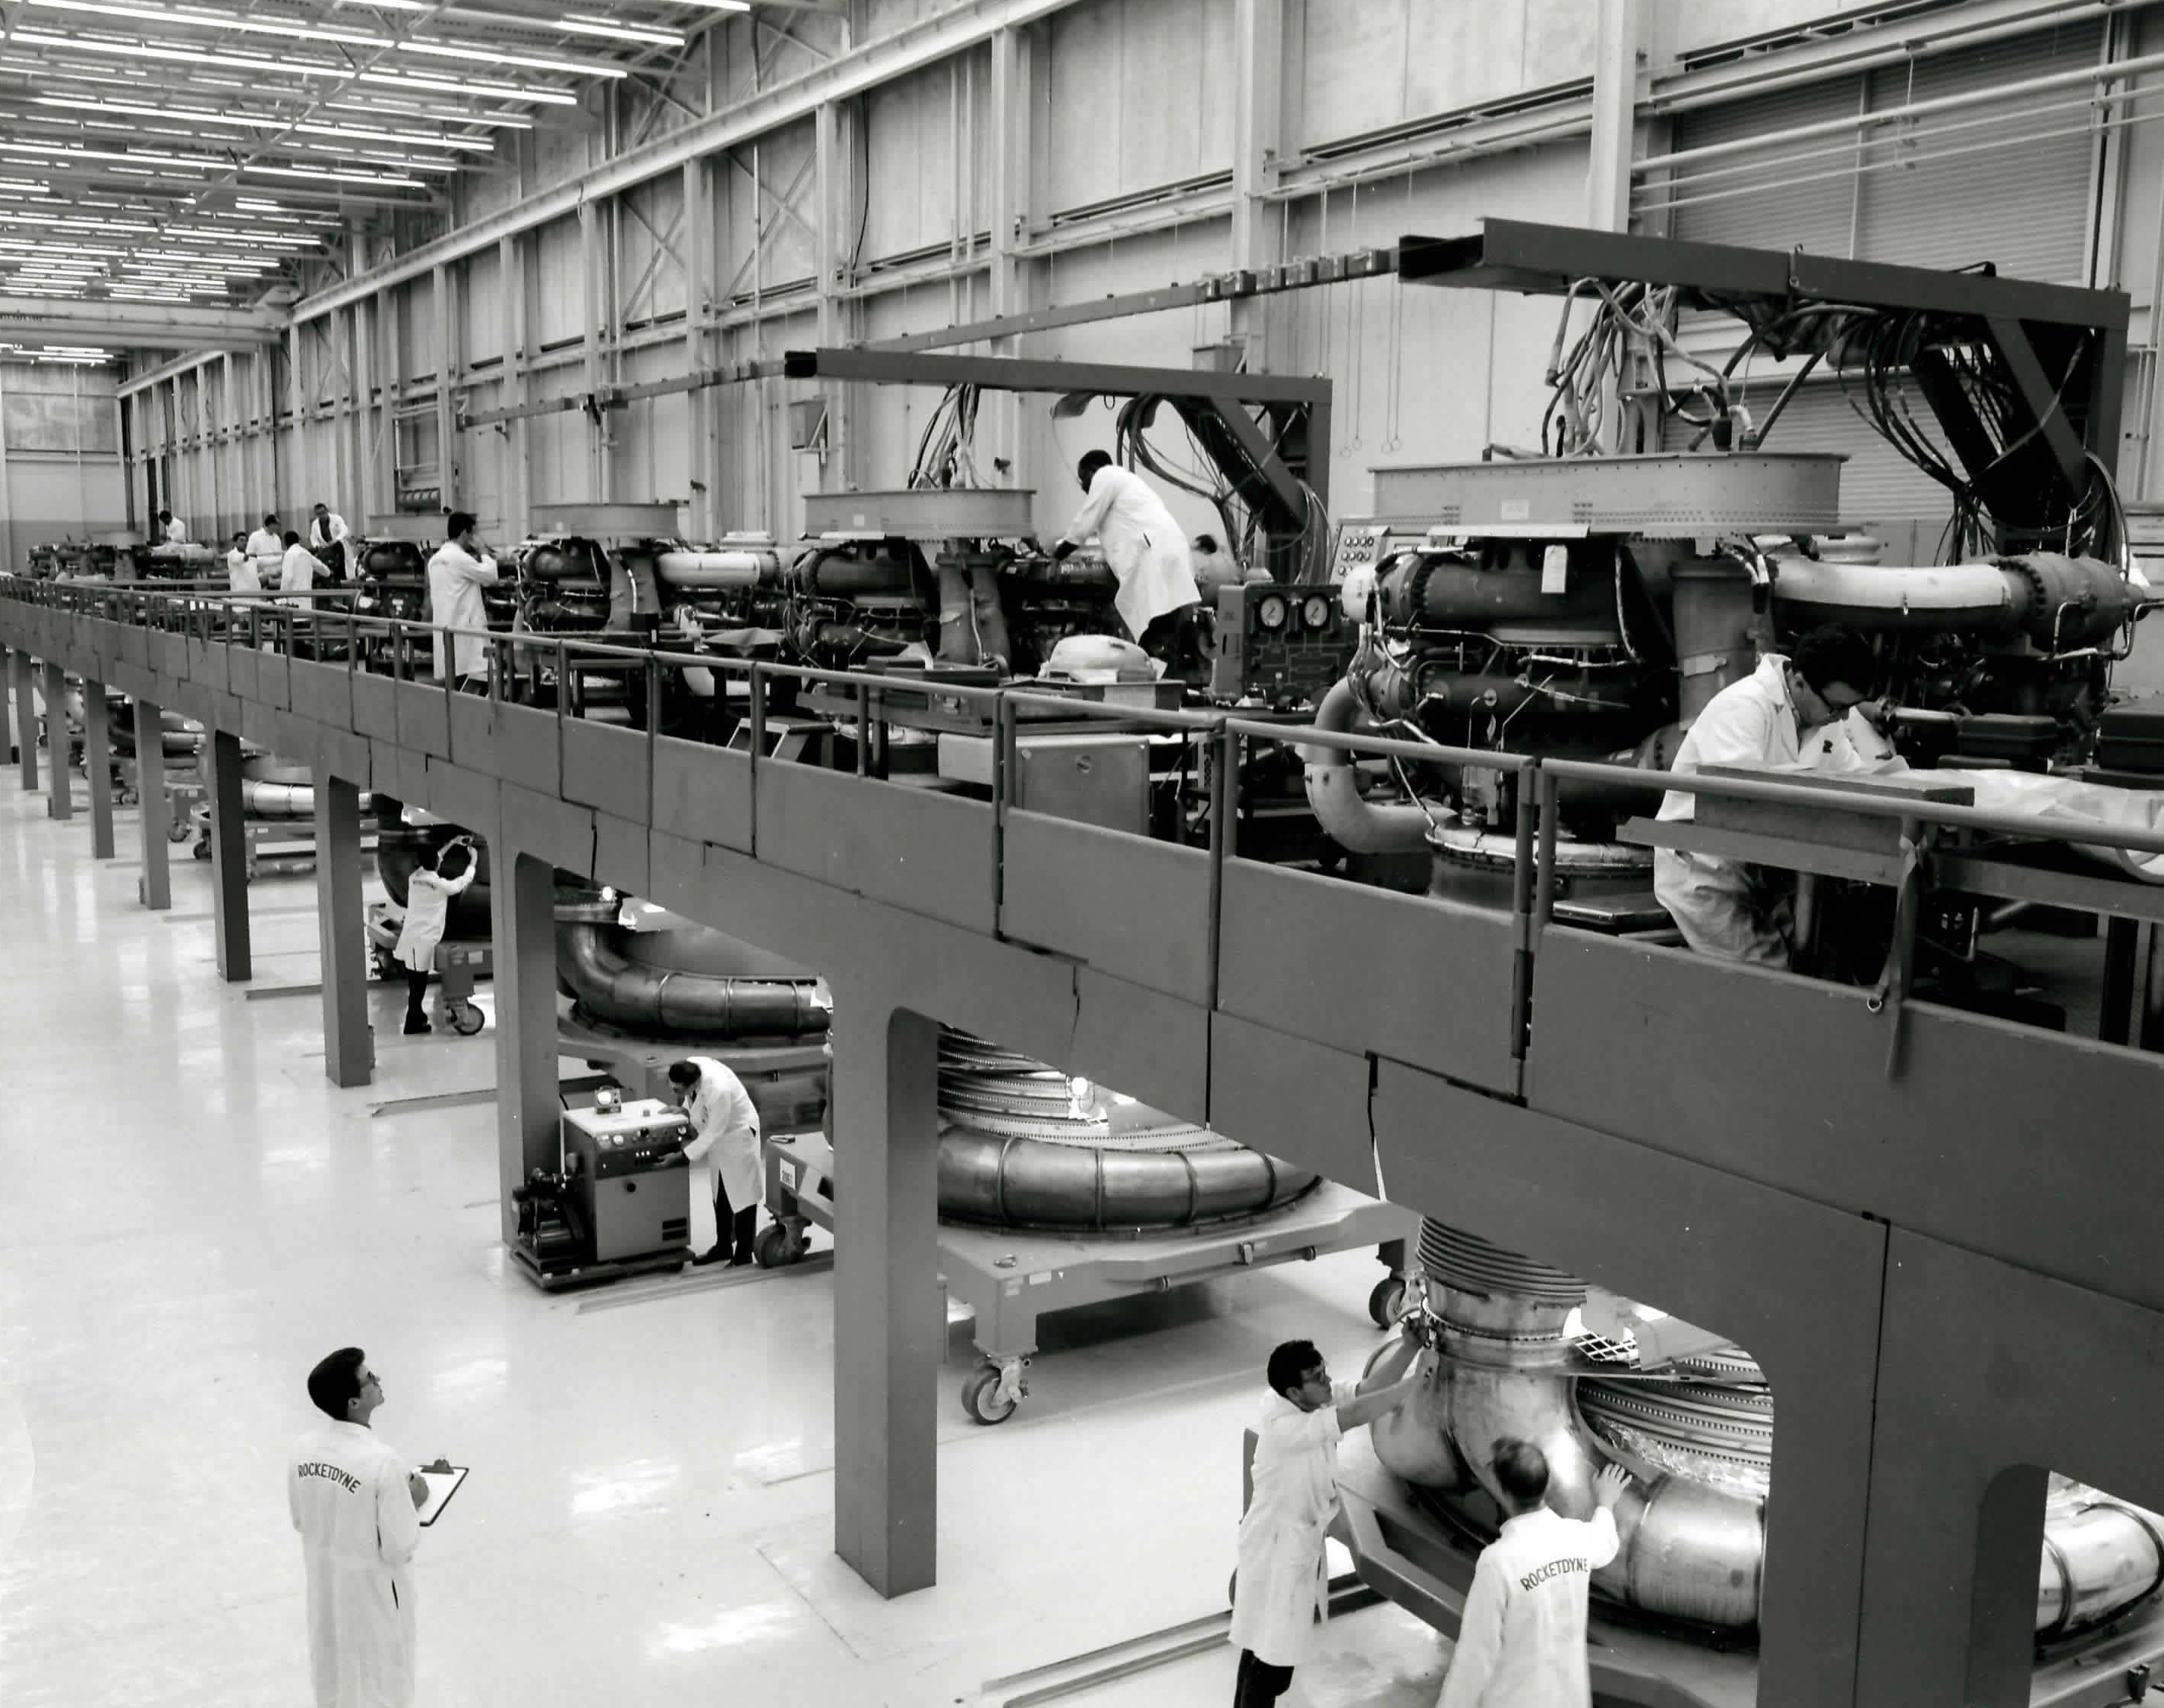 F-1 Assembly – Archive photo of the F-1 assembly line at Aerojet Rocketdyne's Canoga Park, California facility. Five F-1's were used to launch the enormous Saturn V vehicle on the Apollo 11 mission.